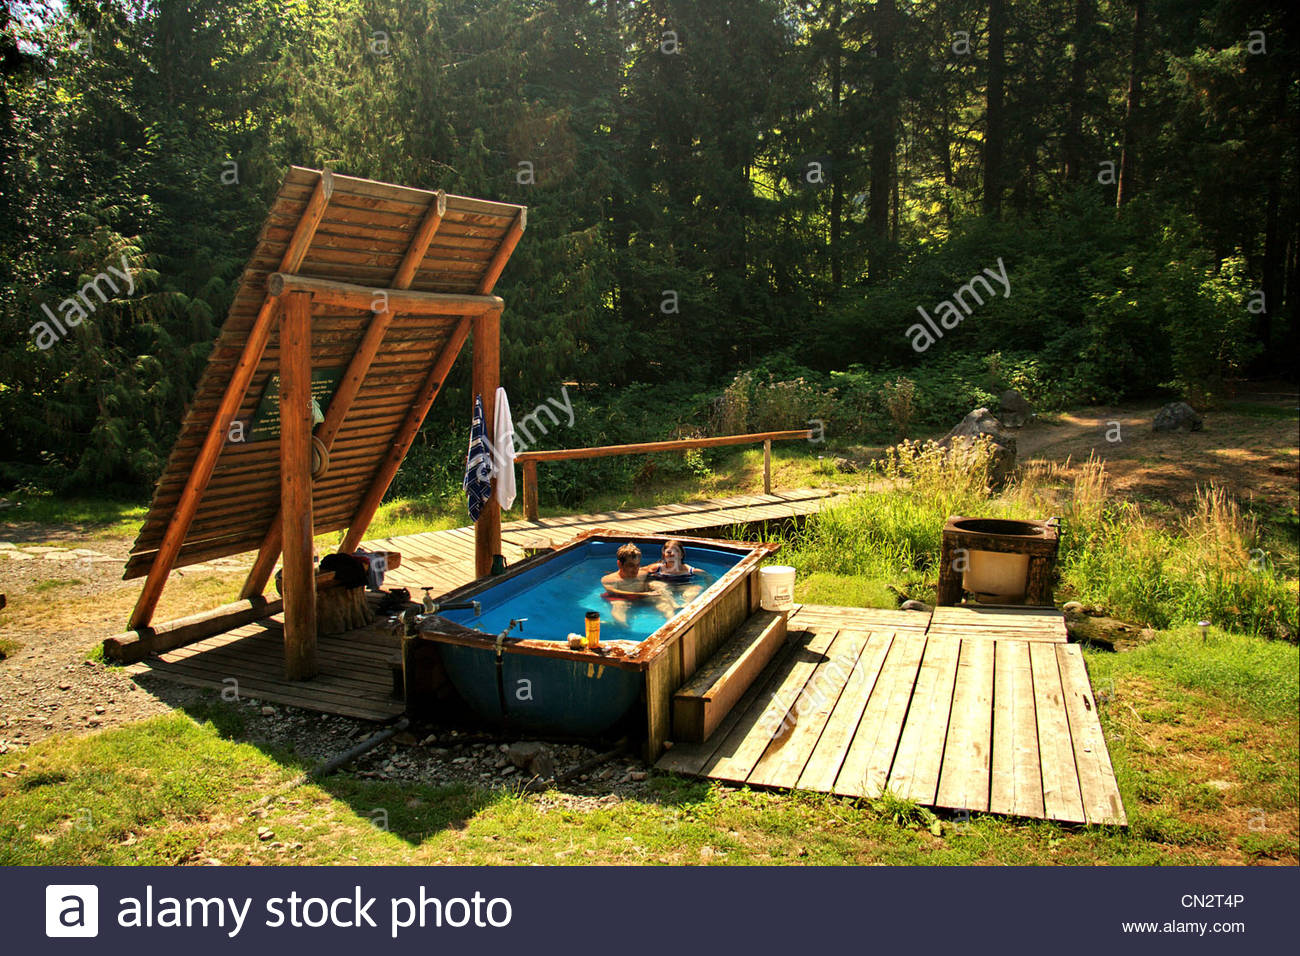 hgtv photo remodel designs sean murdock sizzling by natural outdoors pictures tub hot